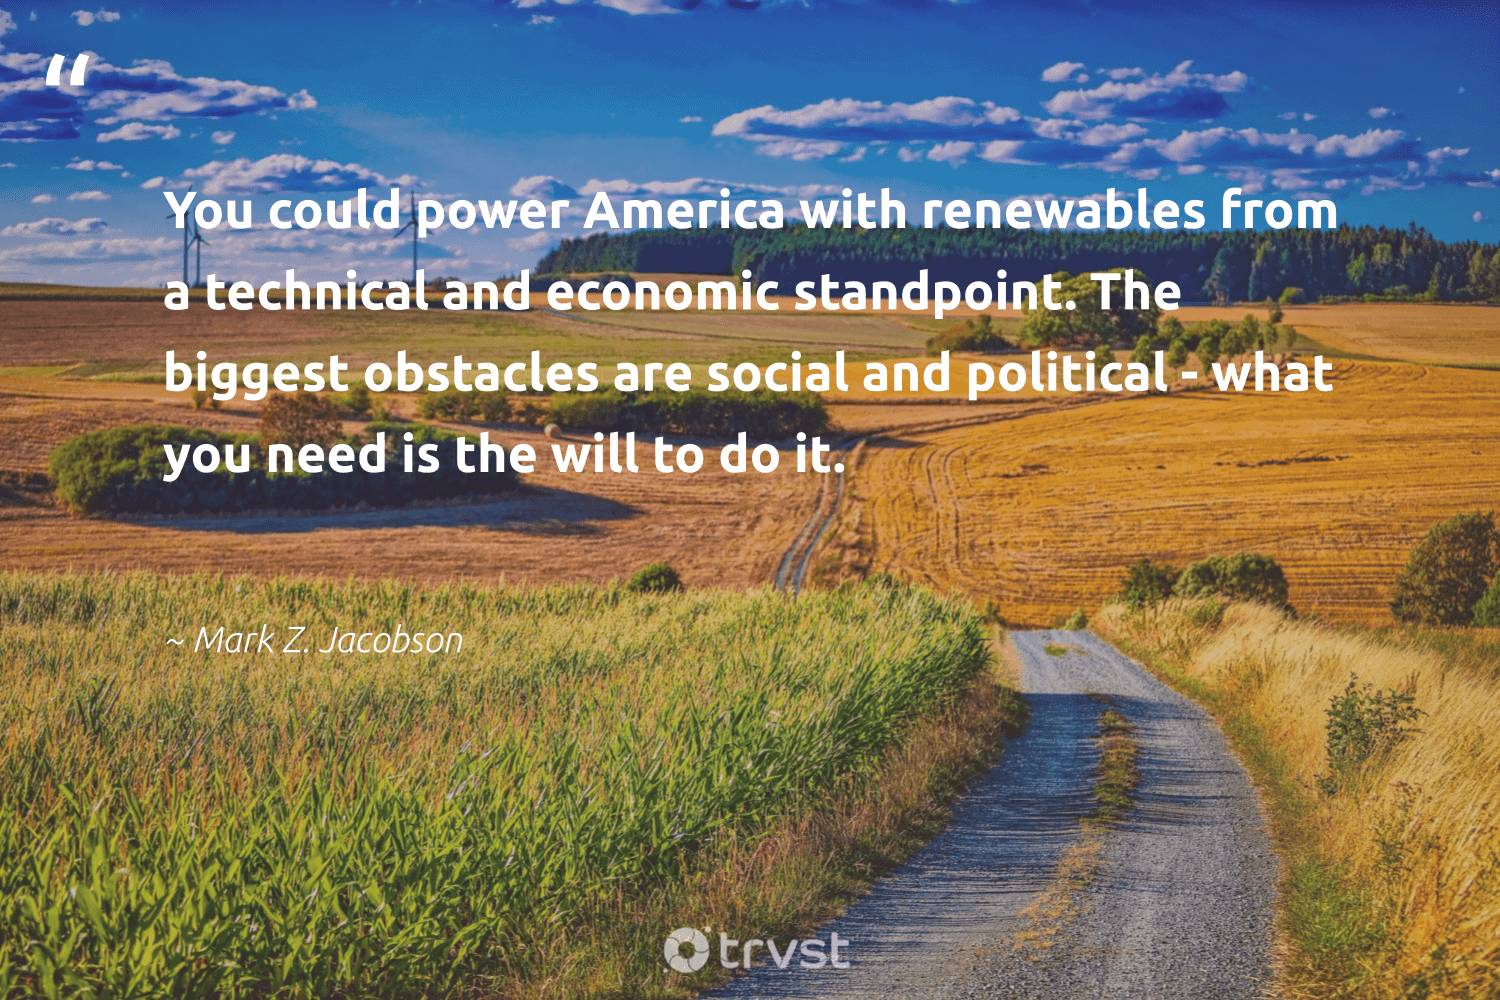 """""""You could power America with renewables from a technical and economic standpoint. The biggest obstacles are social and political - what you need is the will to do it.""""  - Mark Z. Jacobson #trvst #quotes #renewableenergy #renewables #lowcarbon #carbonfree #livegreen #socialimpact #renewable #gogreen #energytransition #bethechange"""